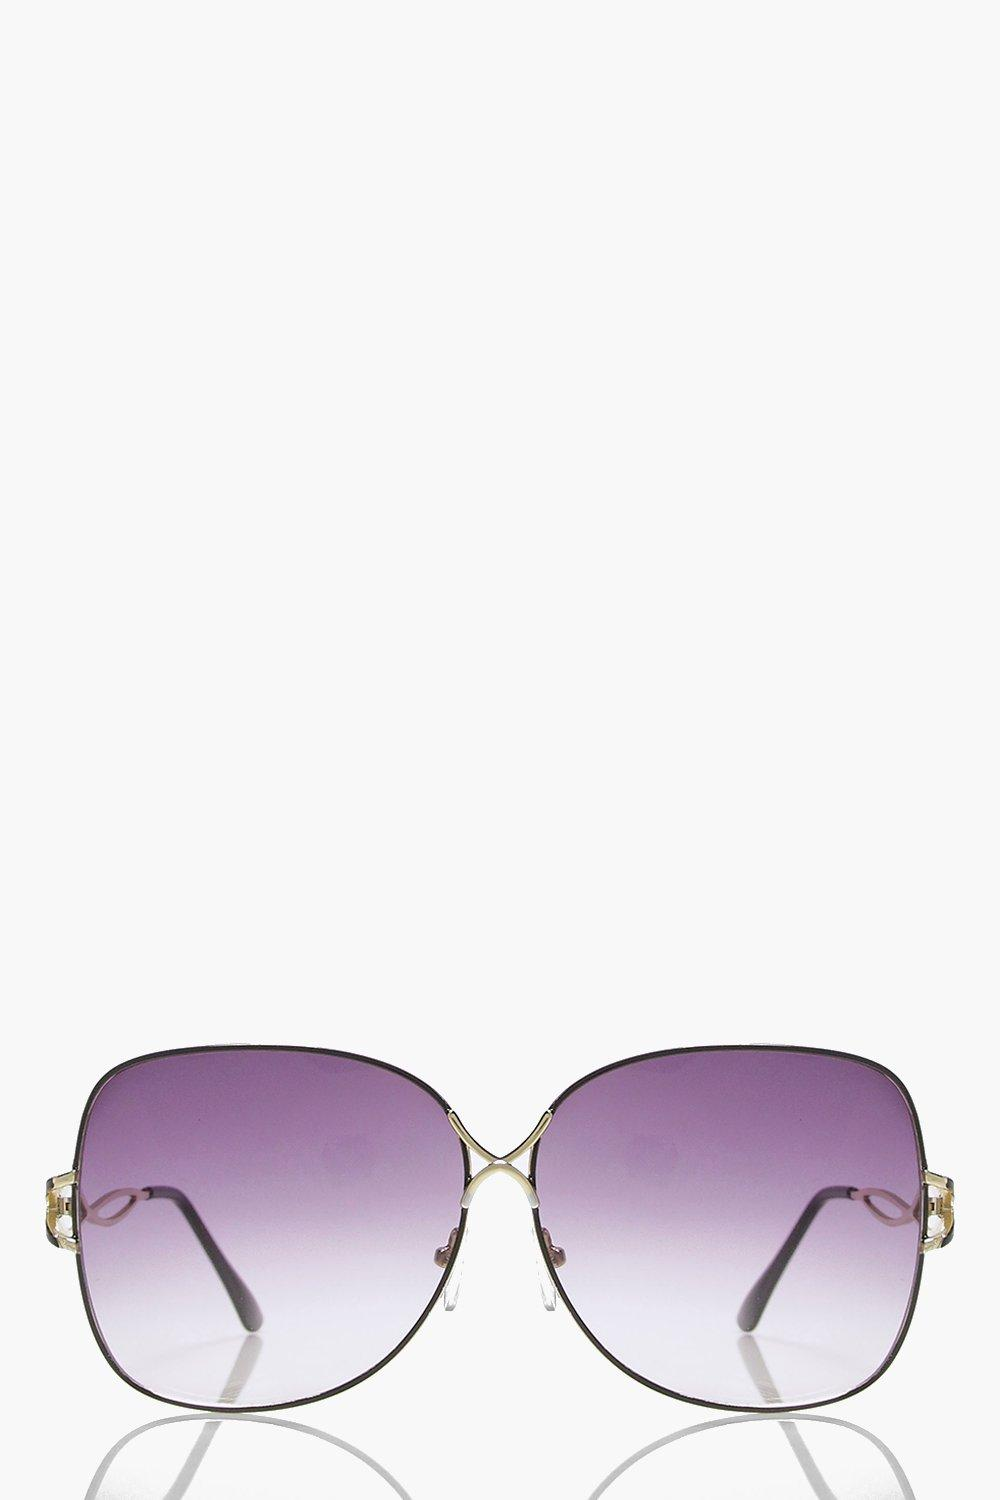 Jessica Oversized Oval Frame Sunglasses